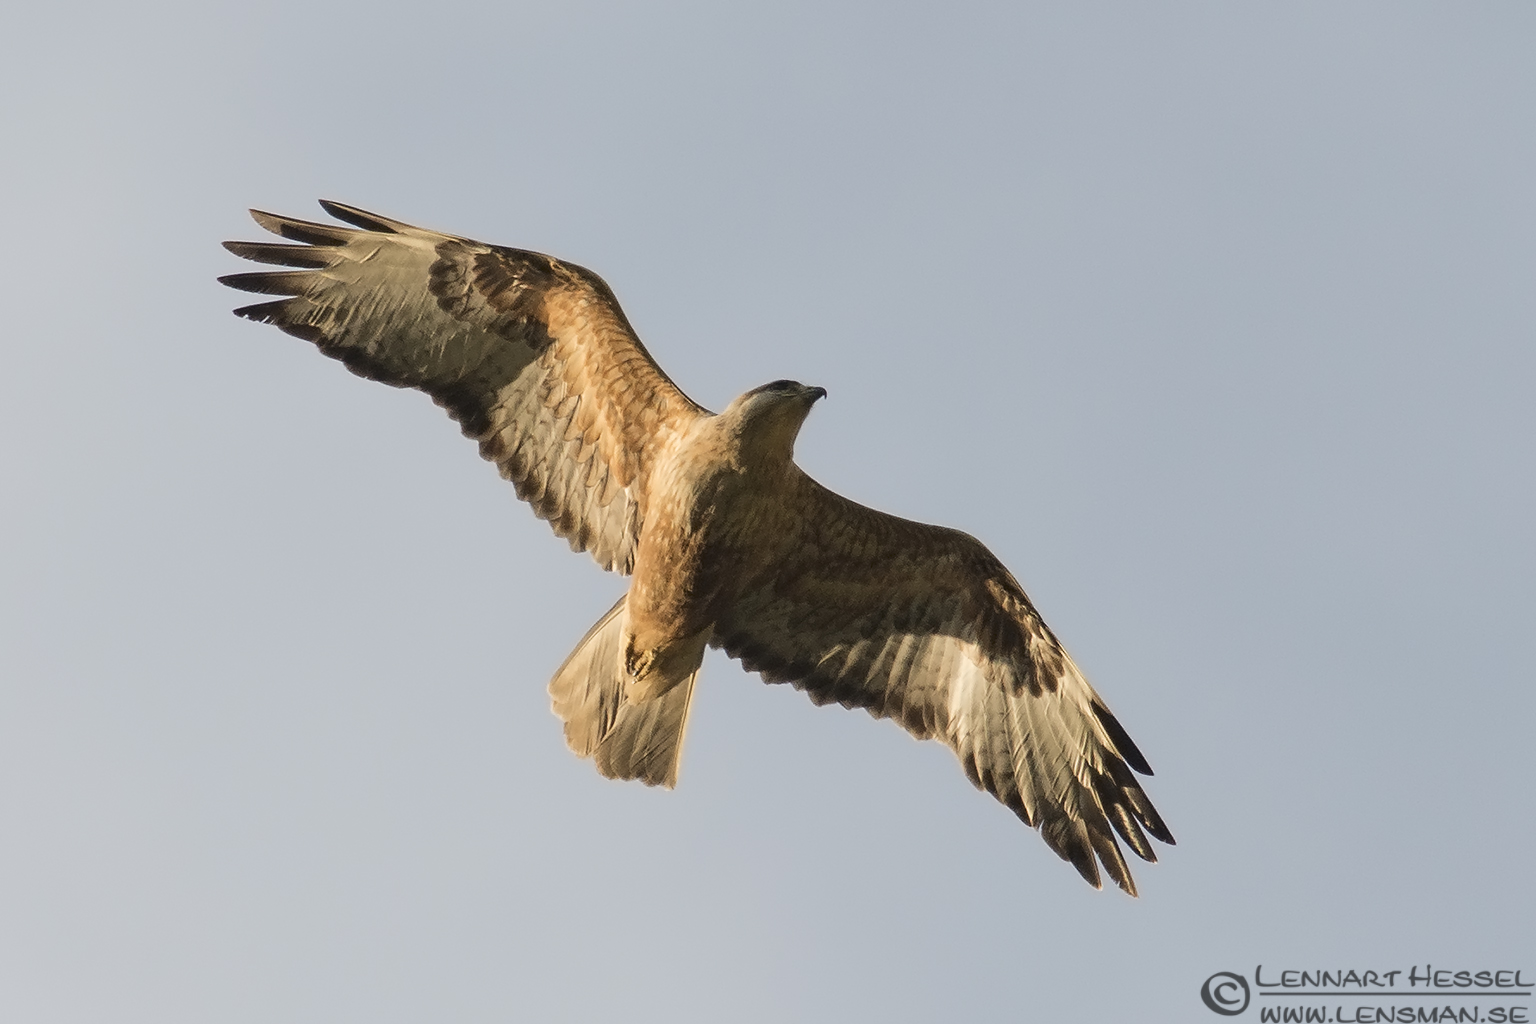 Long-legged Buzzard in Bulgaria